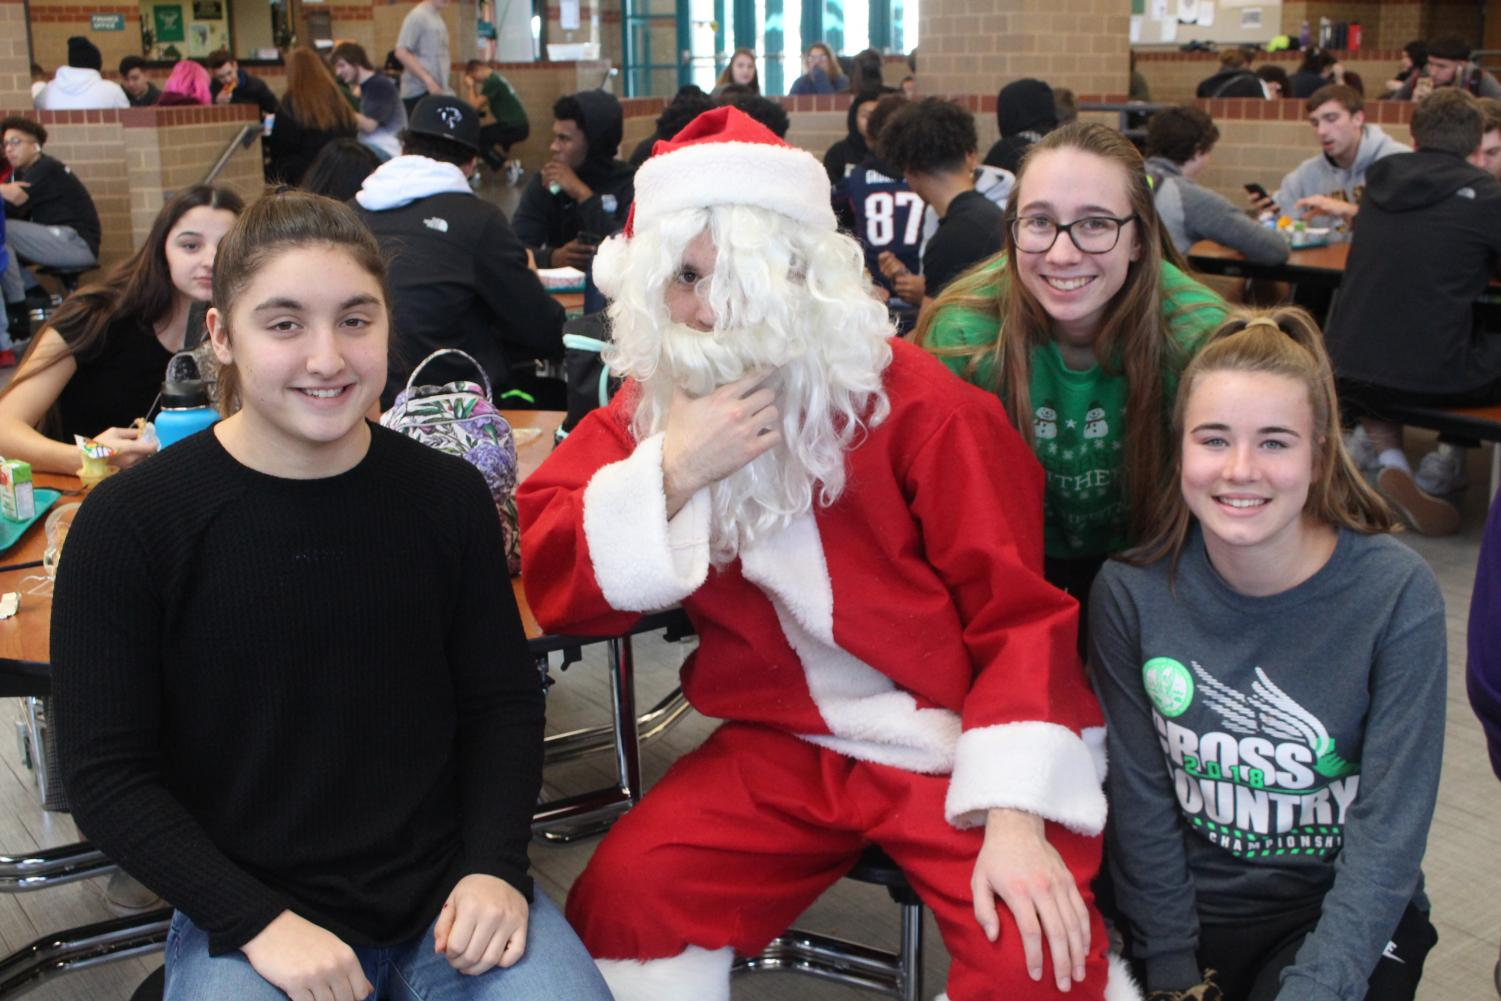 Juniors+Sophia+DeGregorio+and+Ashlyn+Struble+and+senior+Sadie+Svymbersky+pose+for+a+photo+with+Santa.